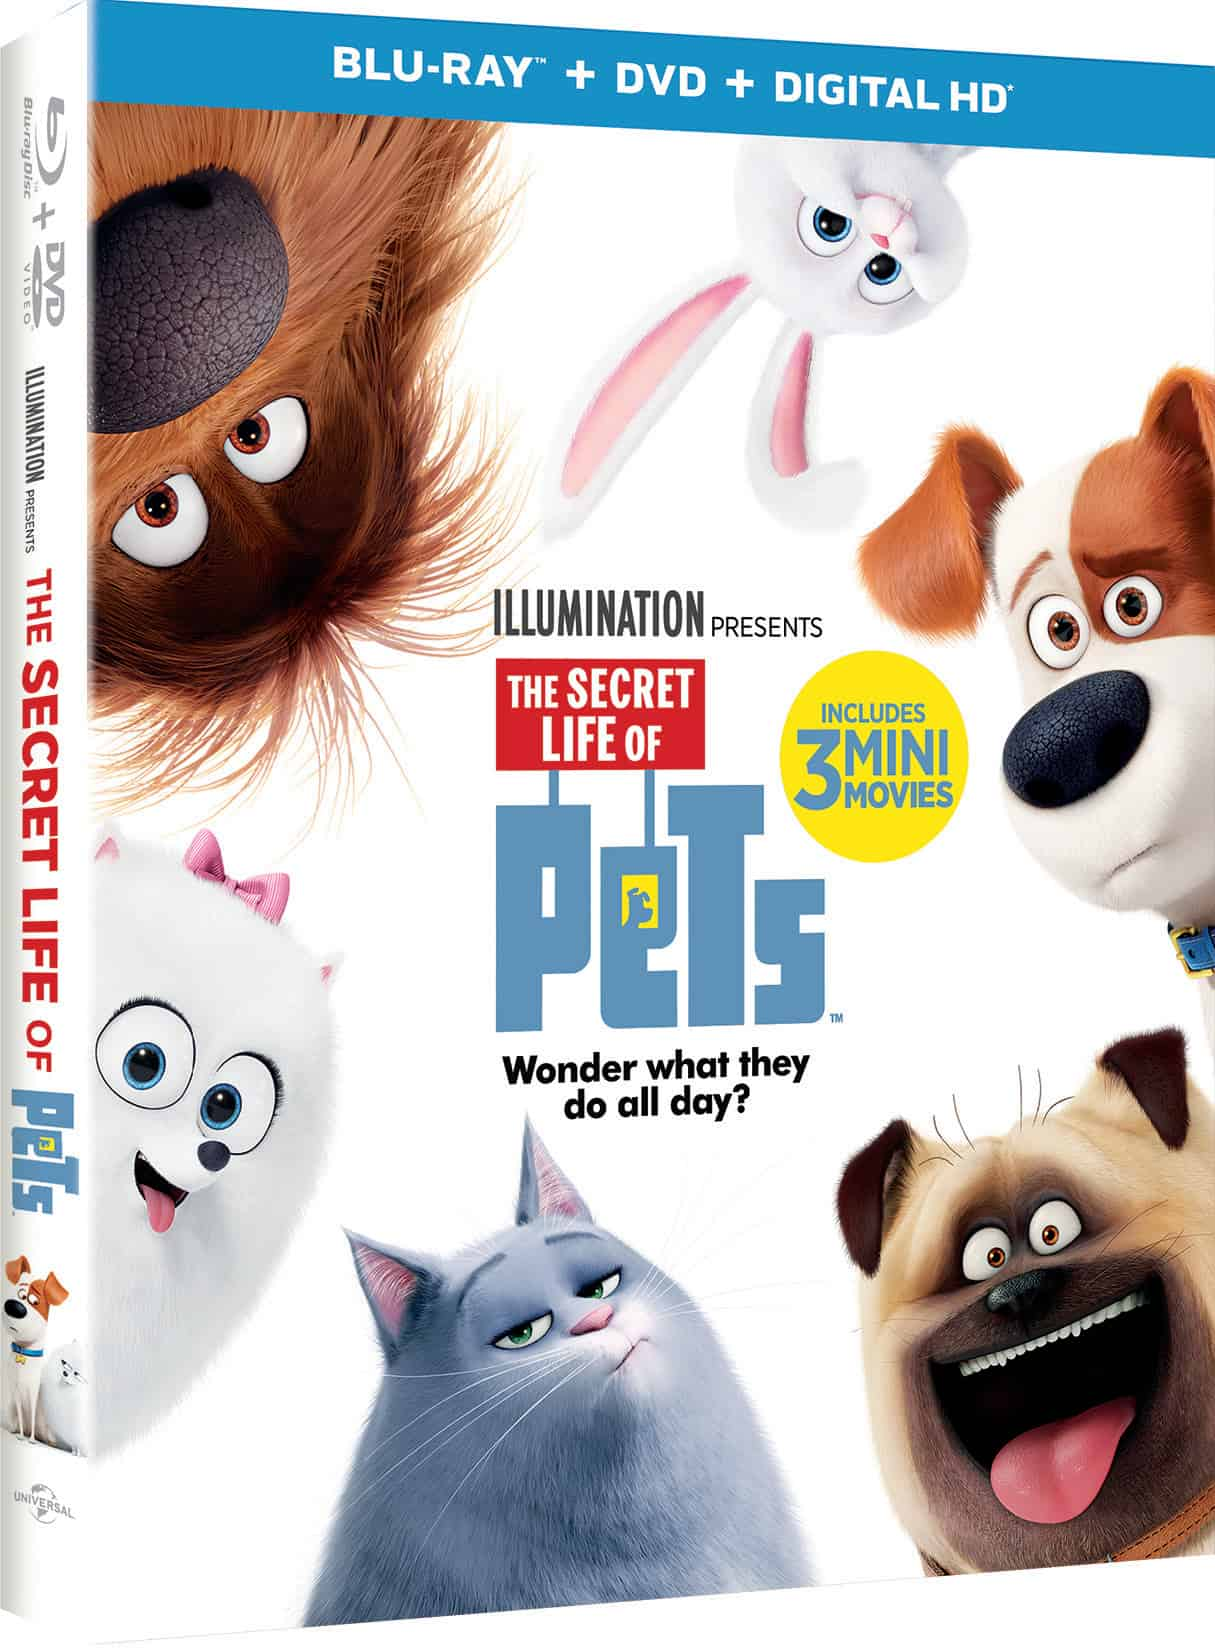 Secret Life of Pets activities and food ideas! Fun themed Secret Life of Pets ideas!